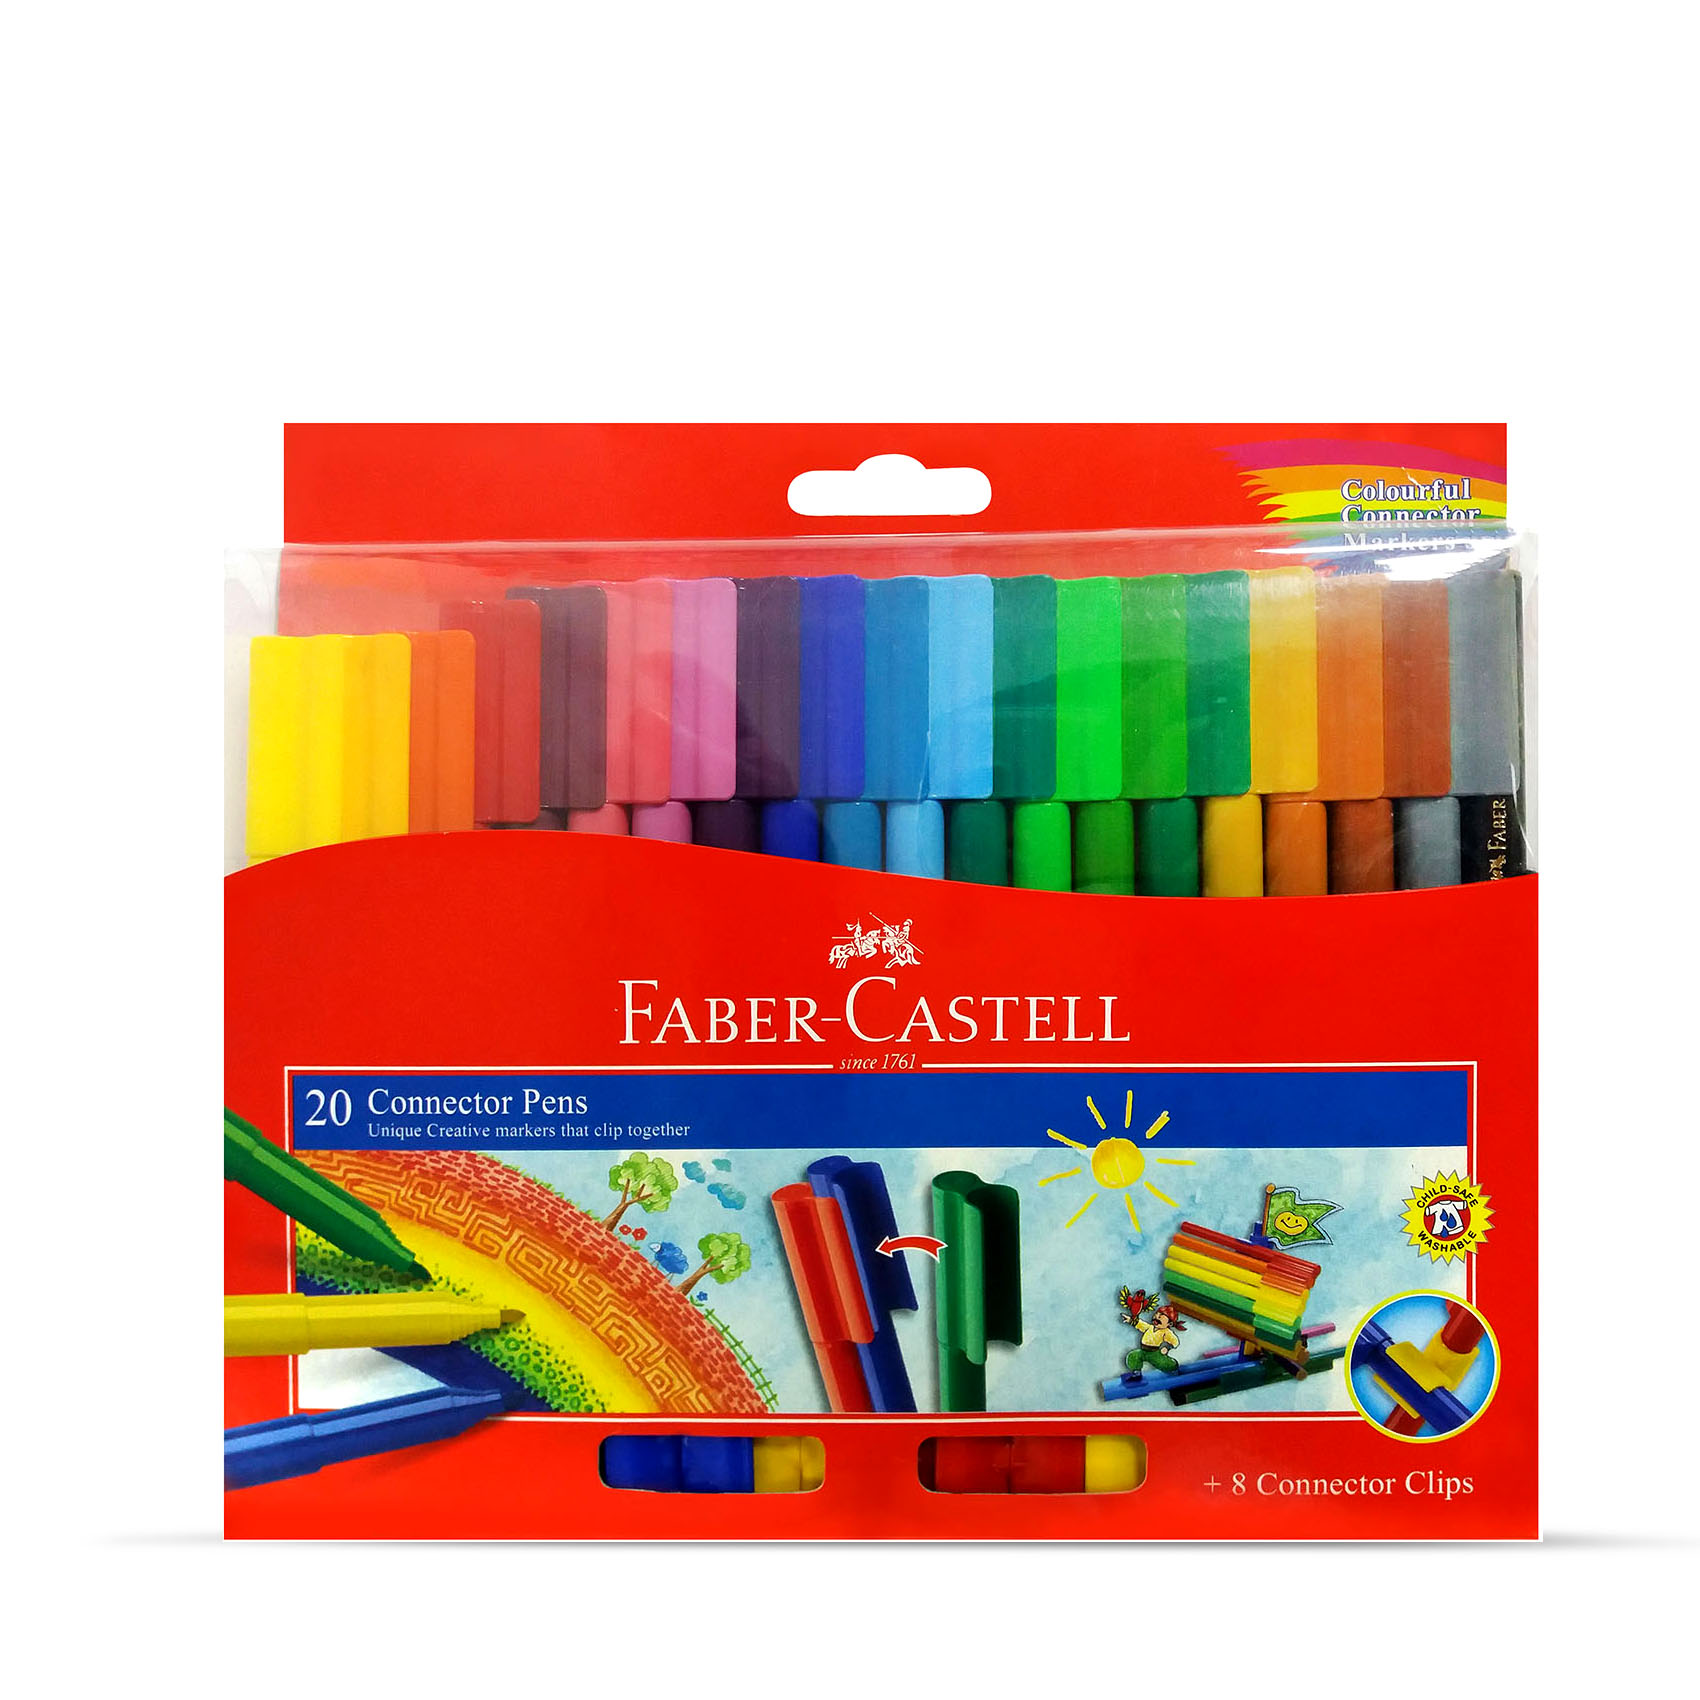 Faber Castell Connector Pens 111200